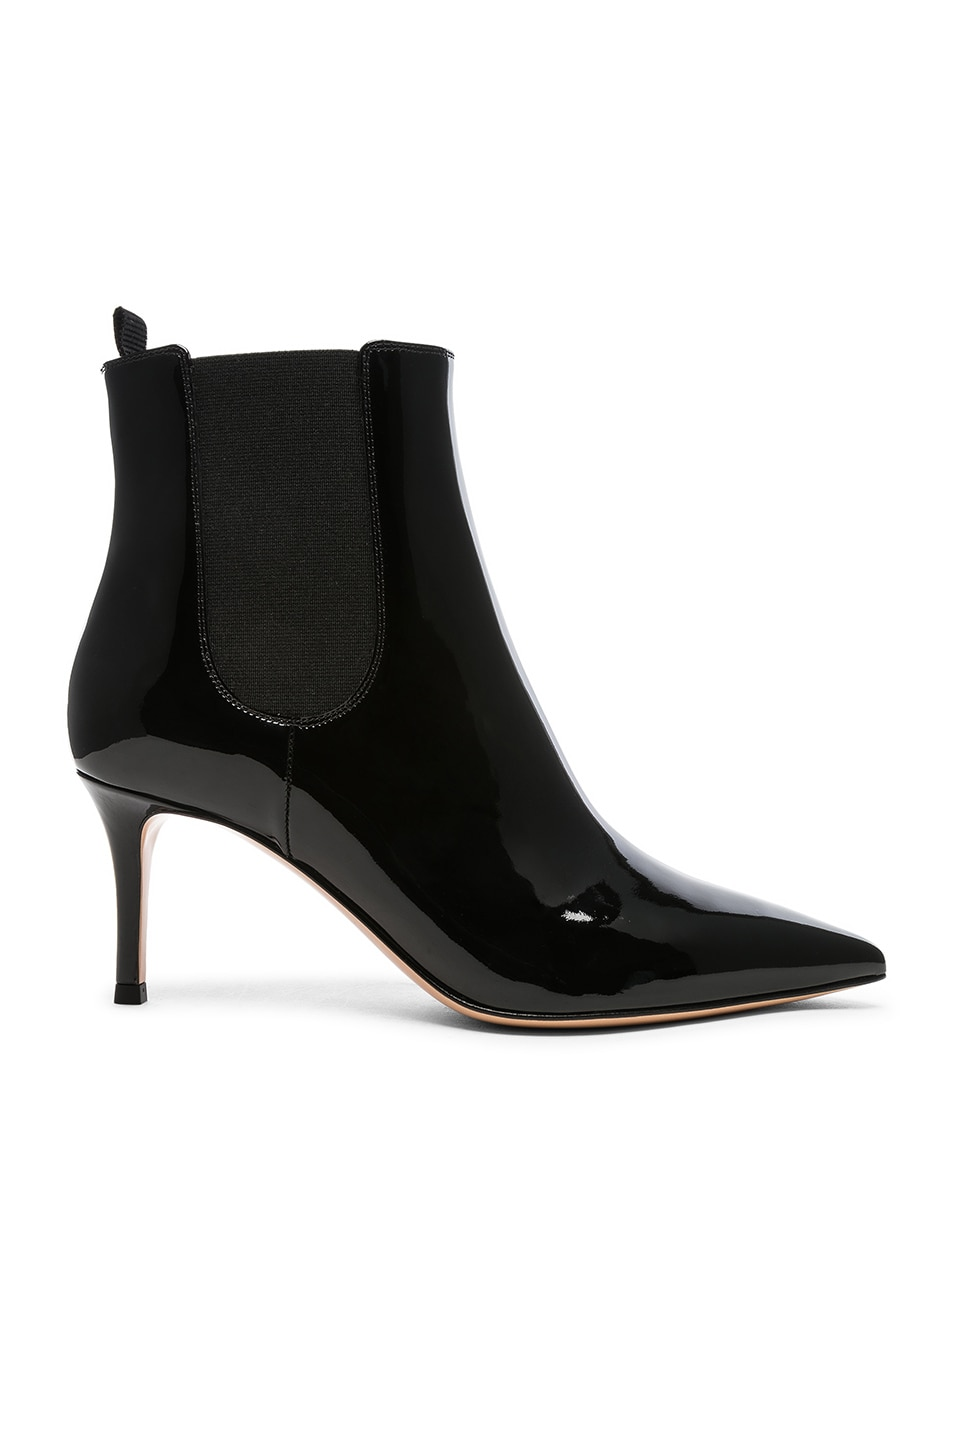 Image 1 of Gianvito Rossi Patent Leather Evan Stiletto Ankle Boots in Black